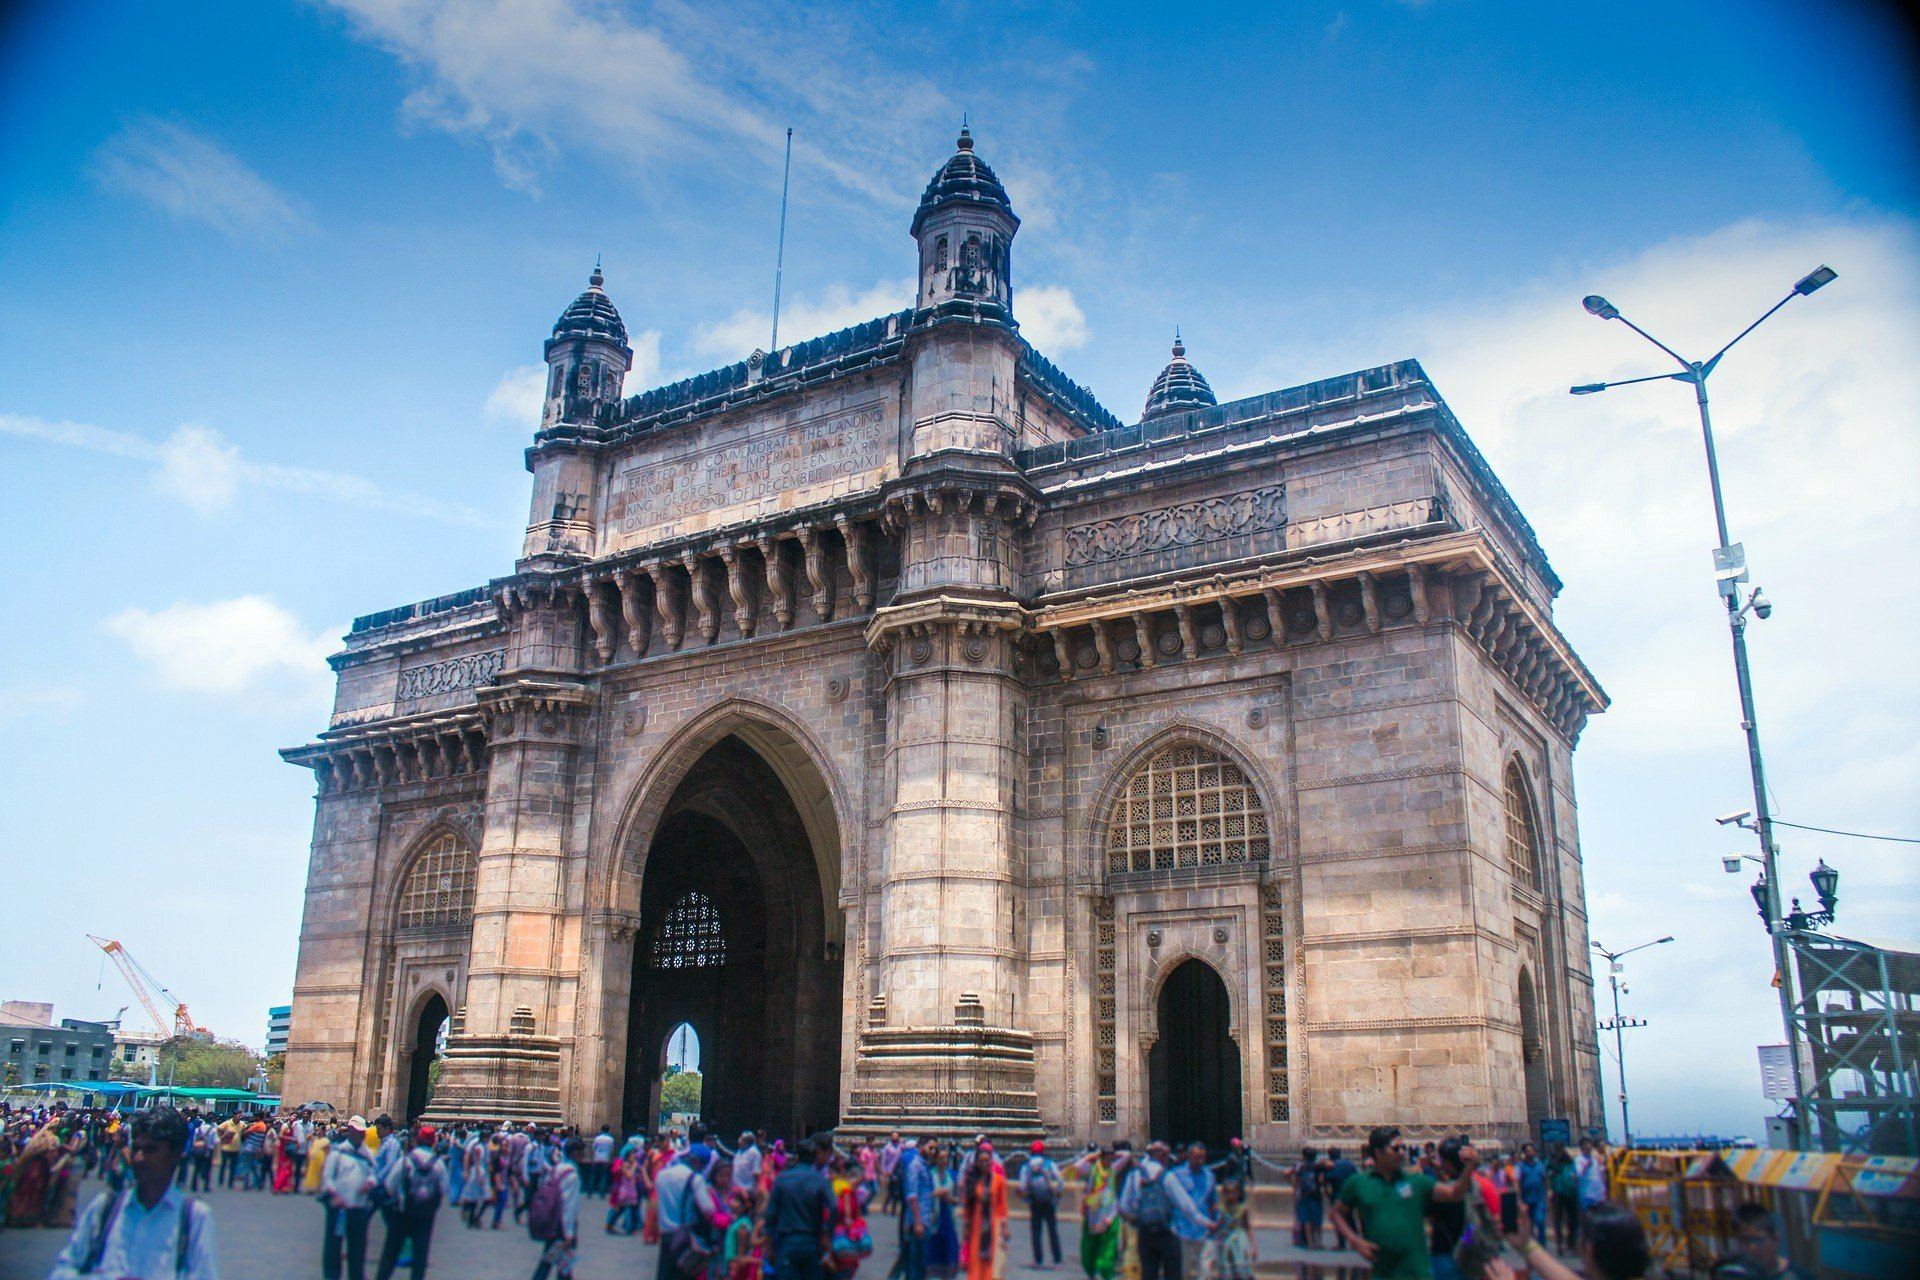 Gateway of India Monument in Mumbai